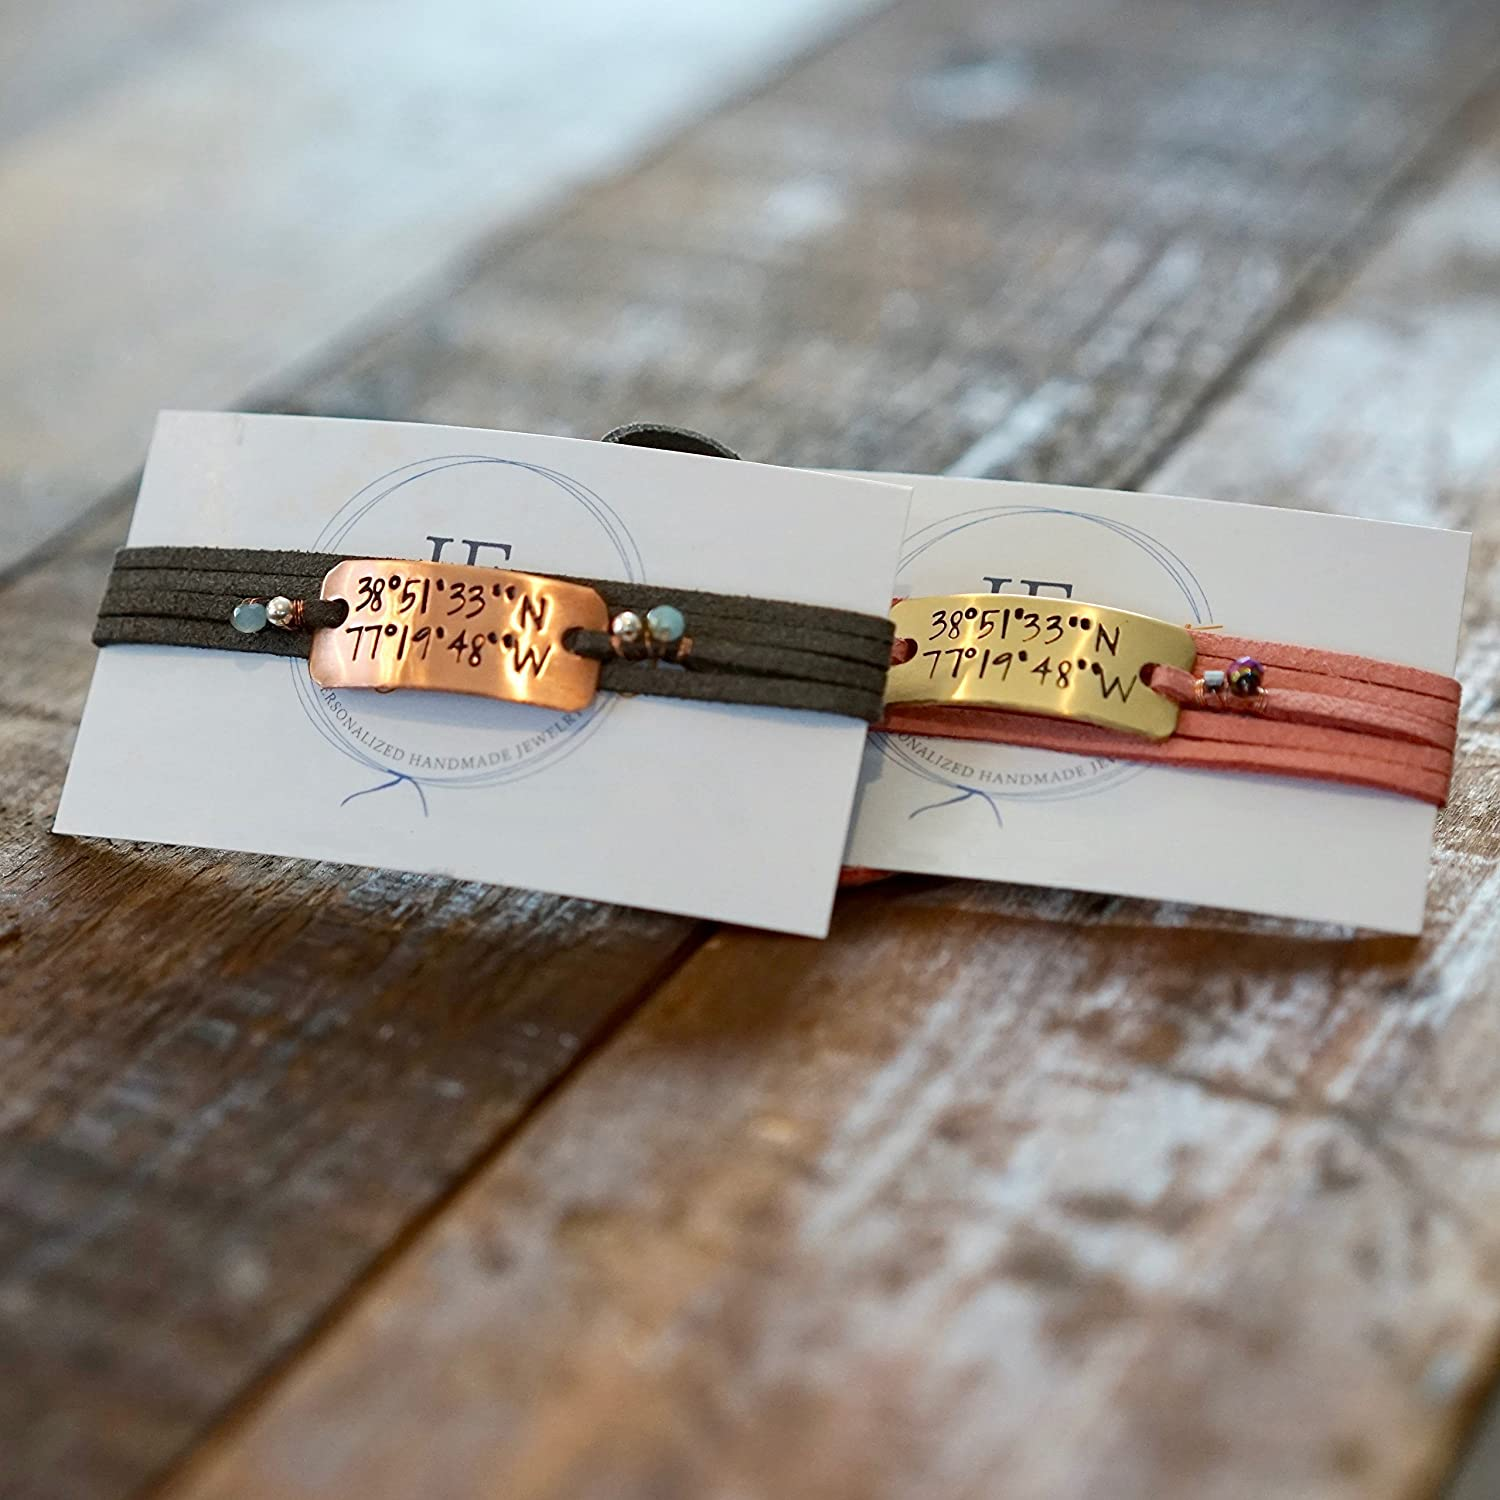 IF - Personalized Coordinate Bracelet Gift in Gold, Silver, or Copper, Location Bracelet, Coordinate Jewelry, Couples Bracelet, Couples Jewelry, Custom Bracelet, Custom Gift, Gifts for Her and Him